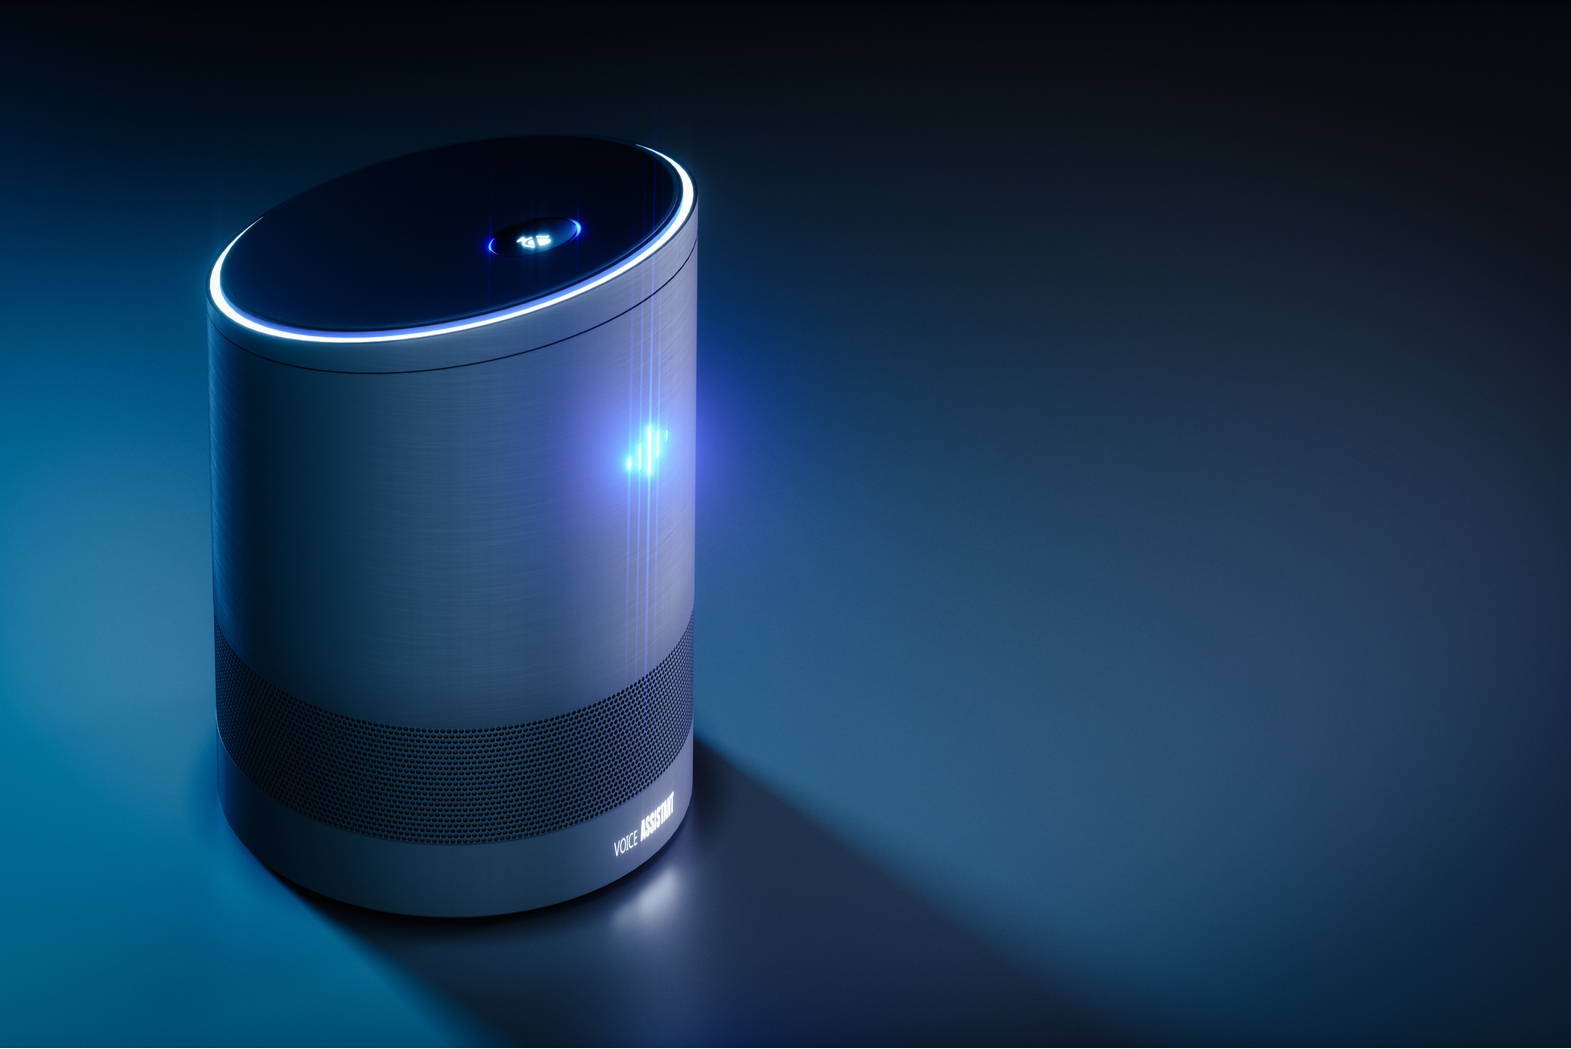 Smart home spending will triple by 2025, but cybersecurity fears could hold market back